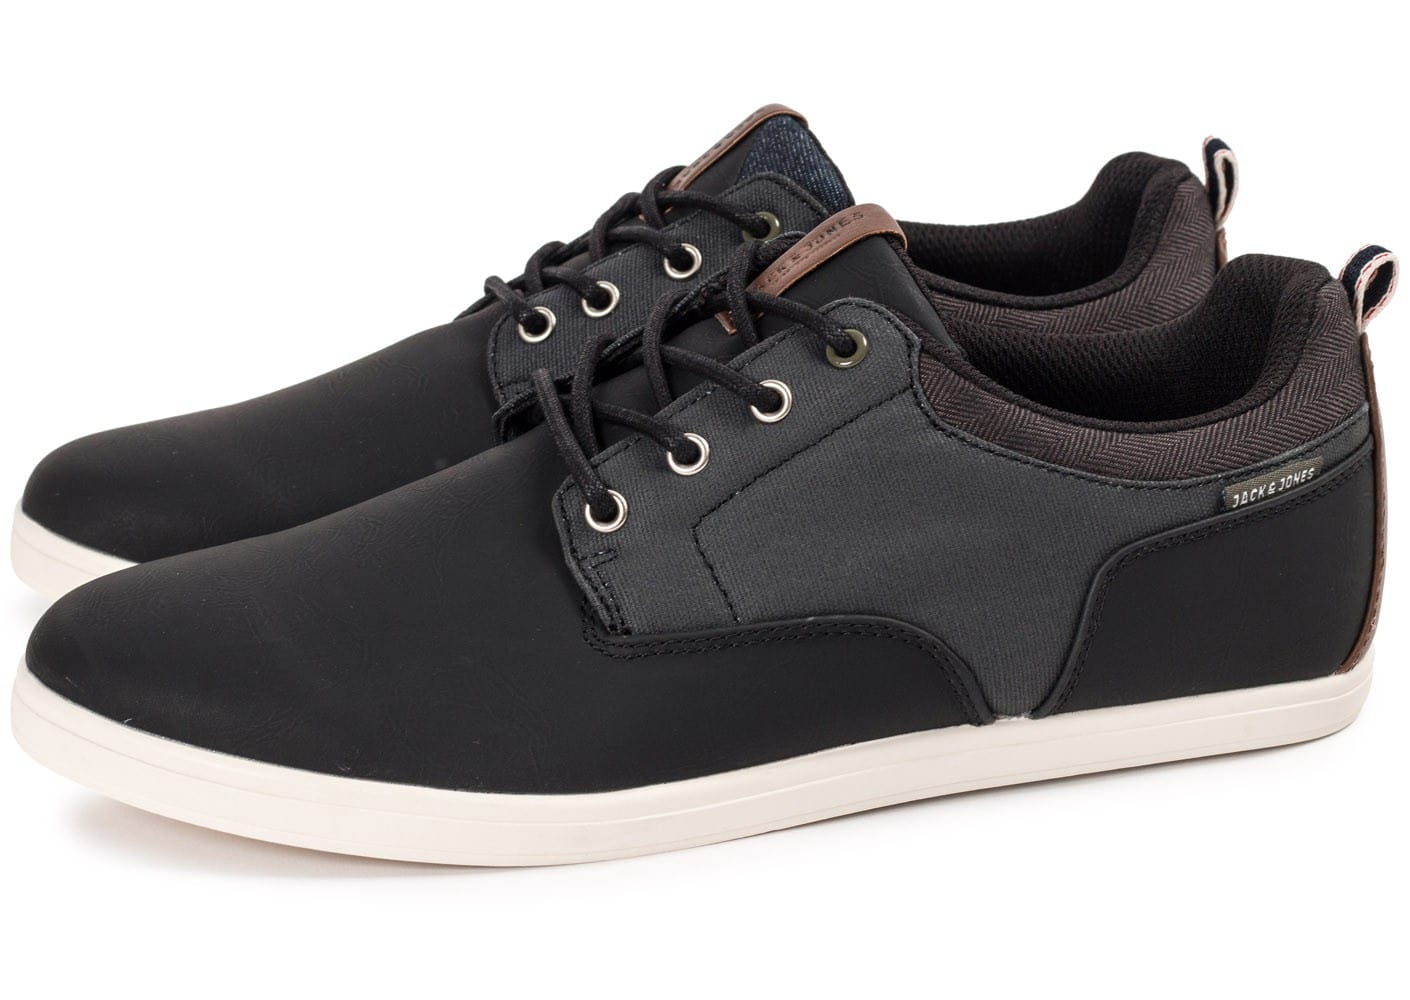 Chaussures Homme Baskets Jones Vaspa Jackamp; Anthracite Herring sdhQxtrC